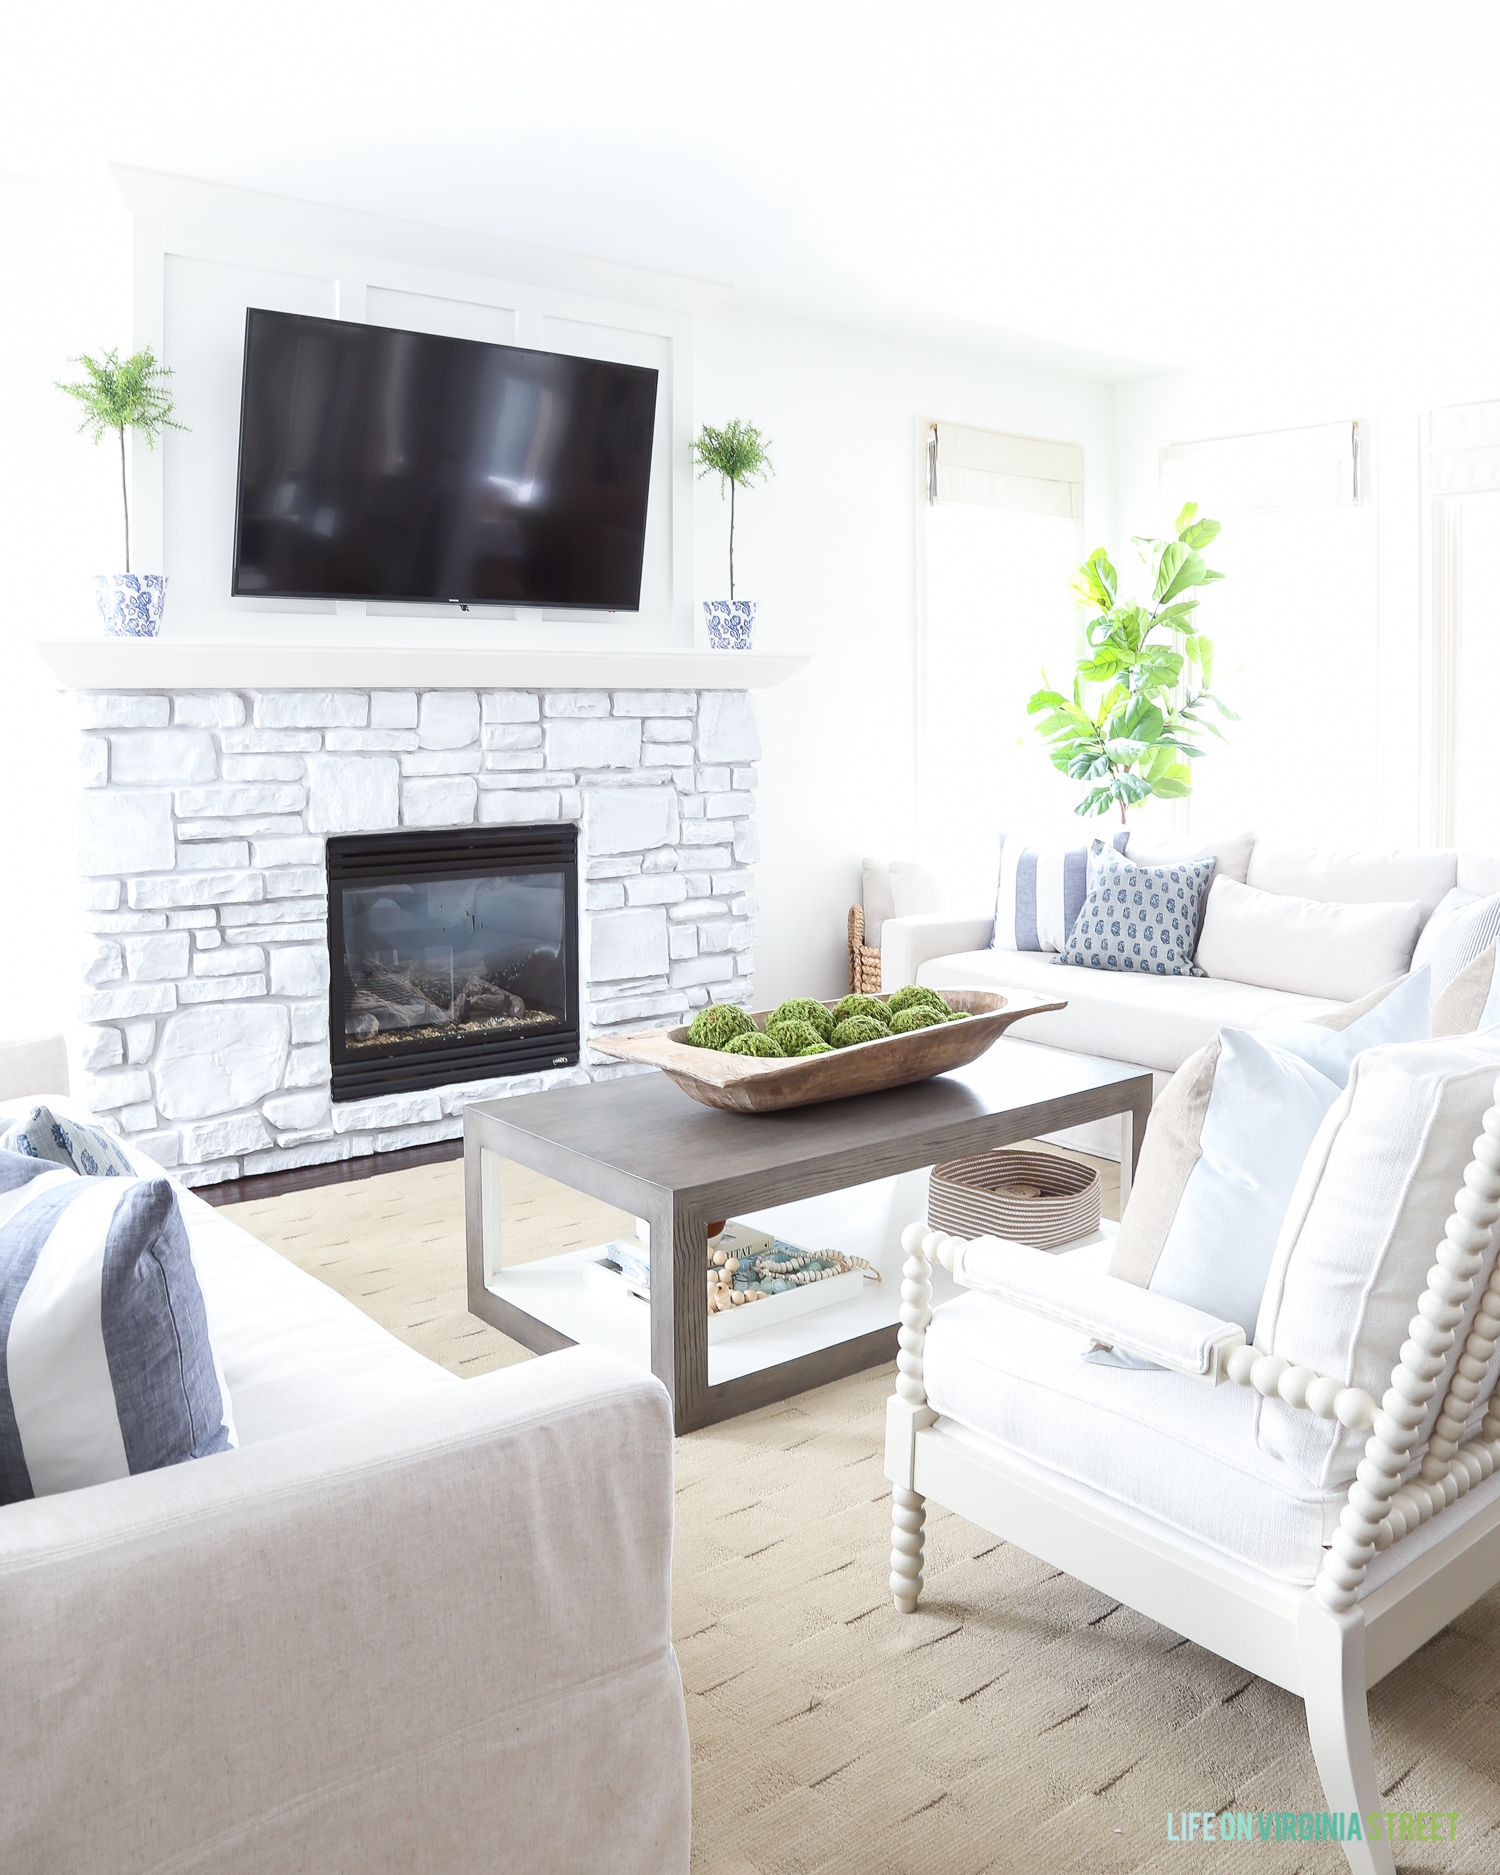 5 Simple Ways To Decorate For Spring   Life On Virginia Street